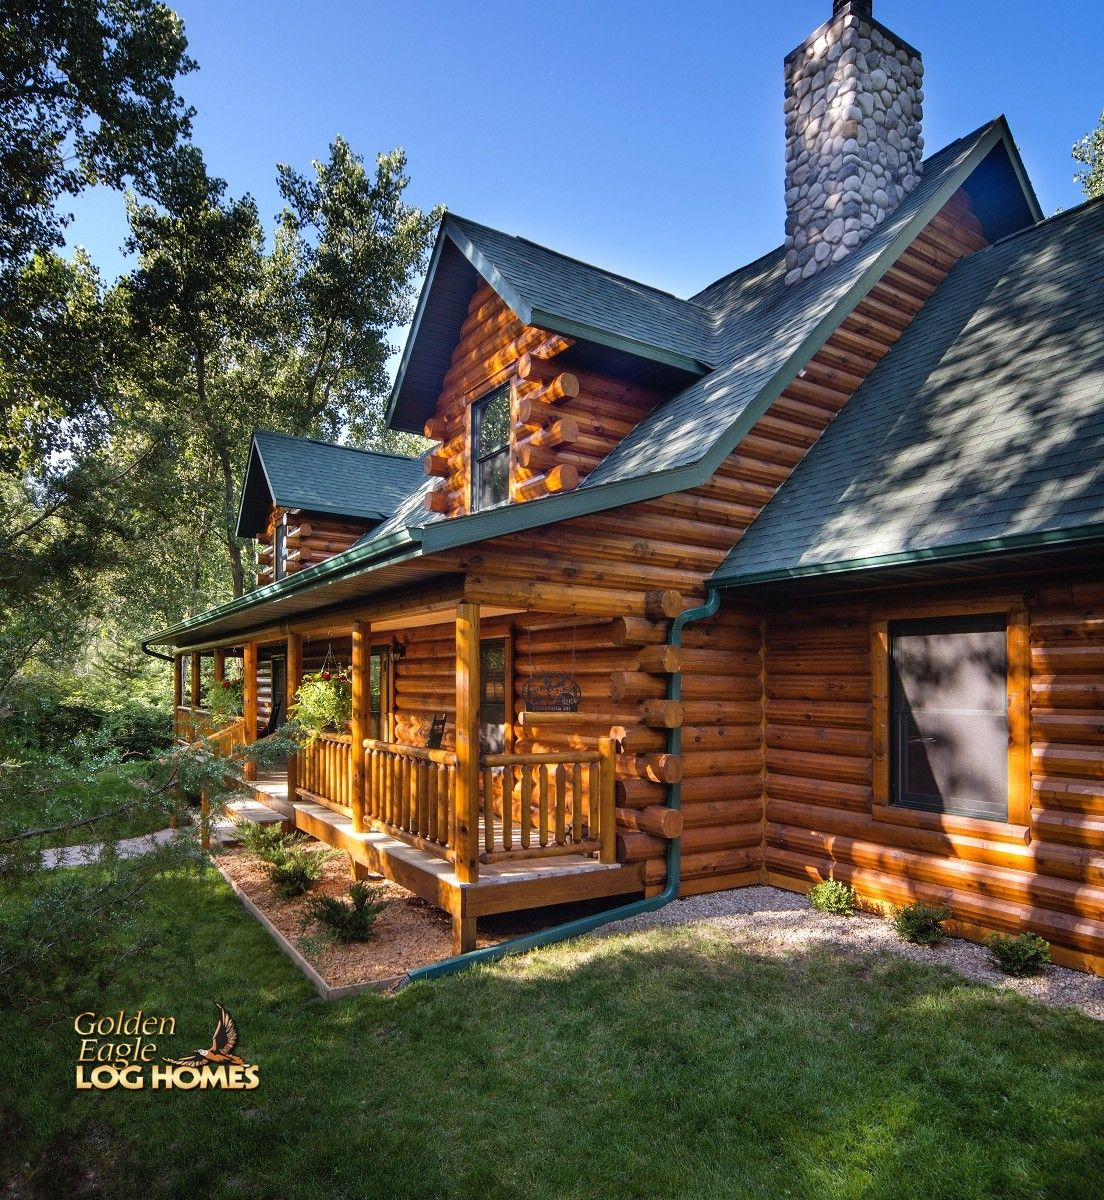 Log Home Exterior Ideas: Log Home By Golden Eagle Log Homes